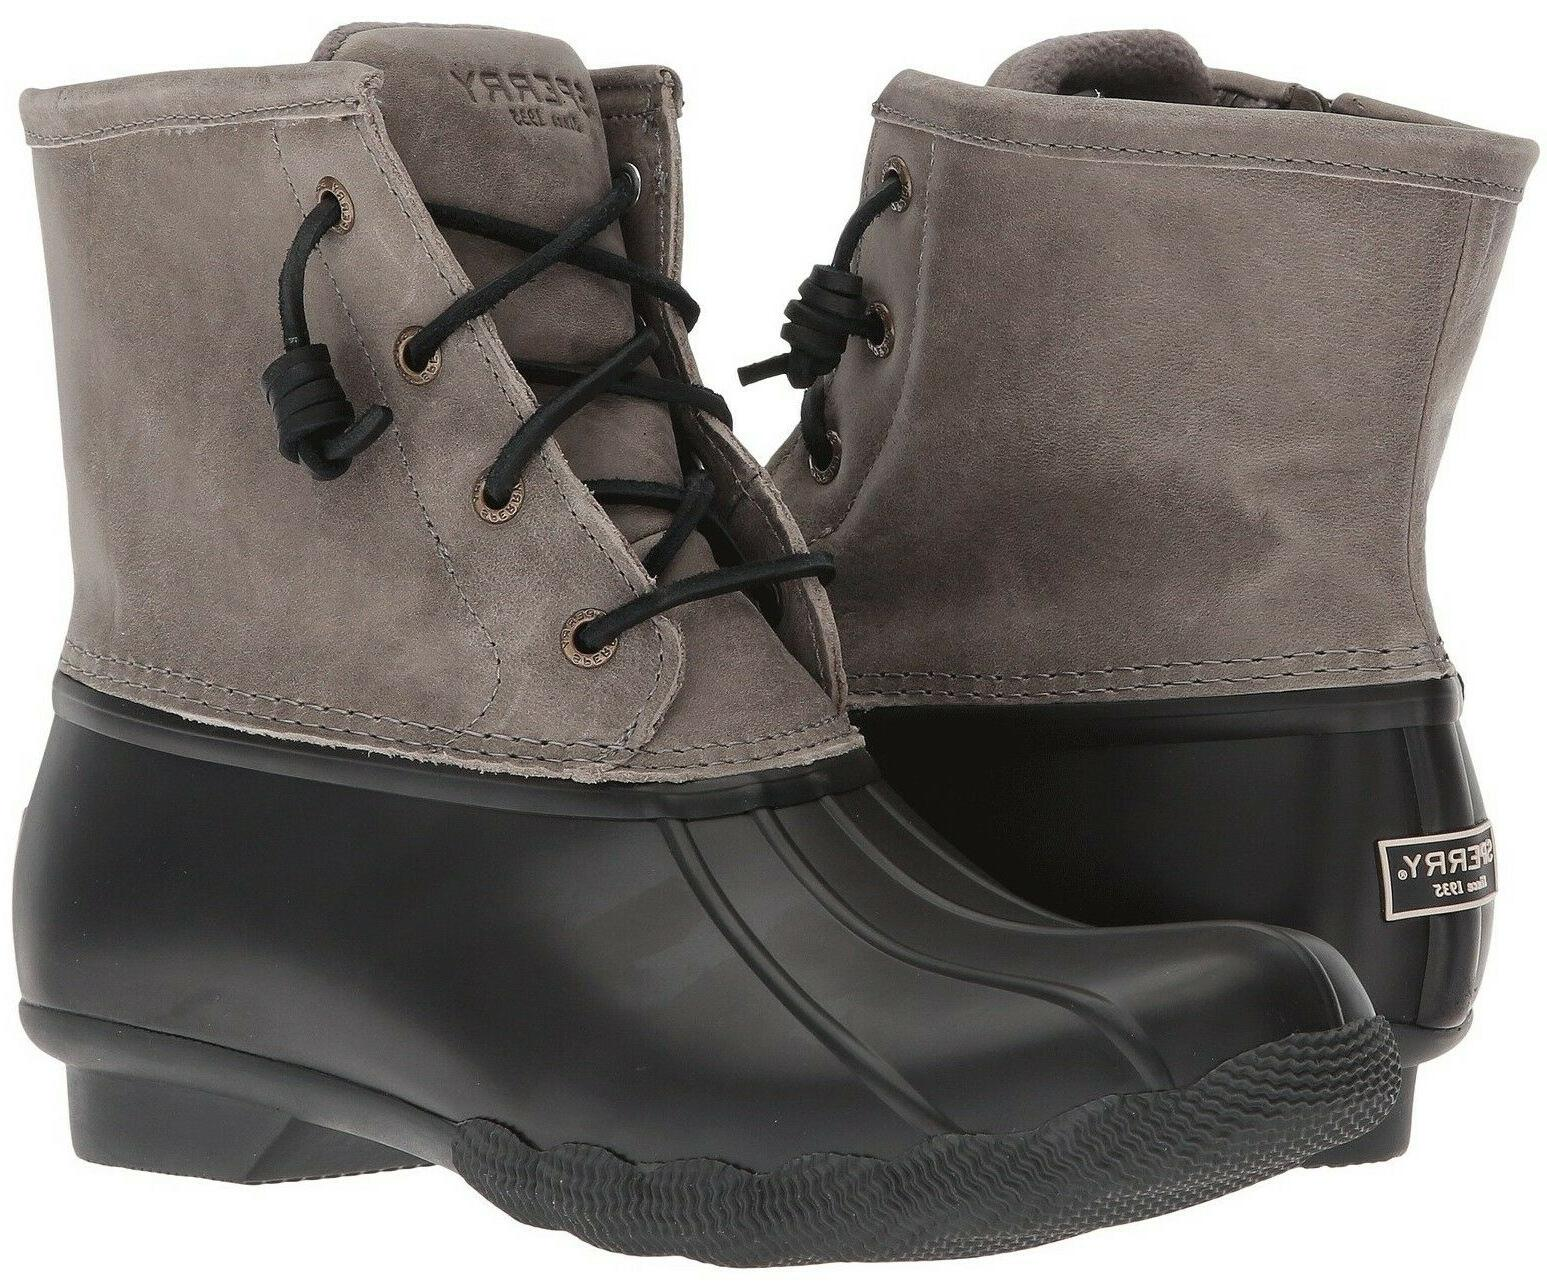 sperry top sider saltwater leather duck boots